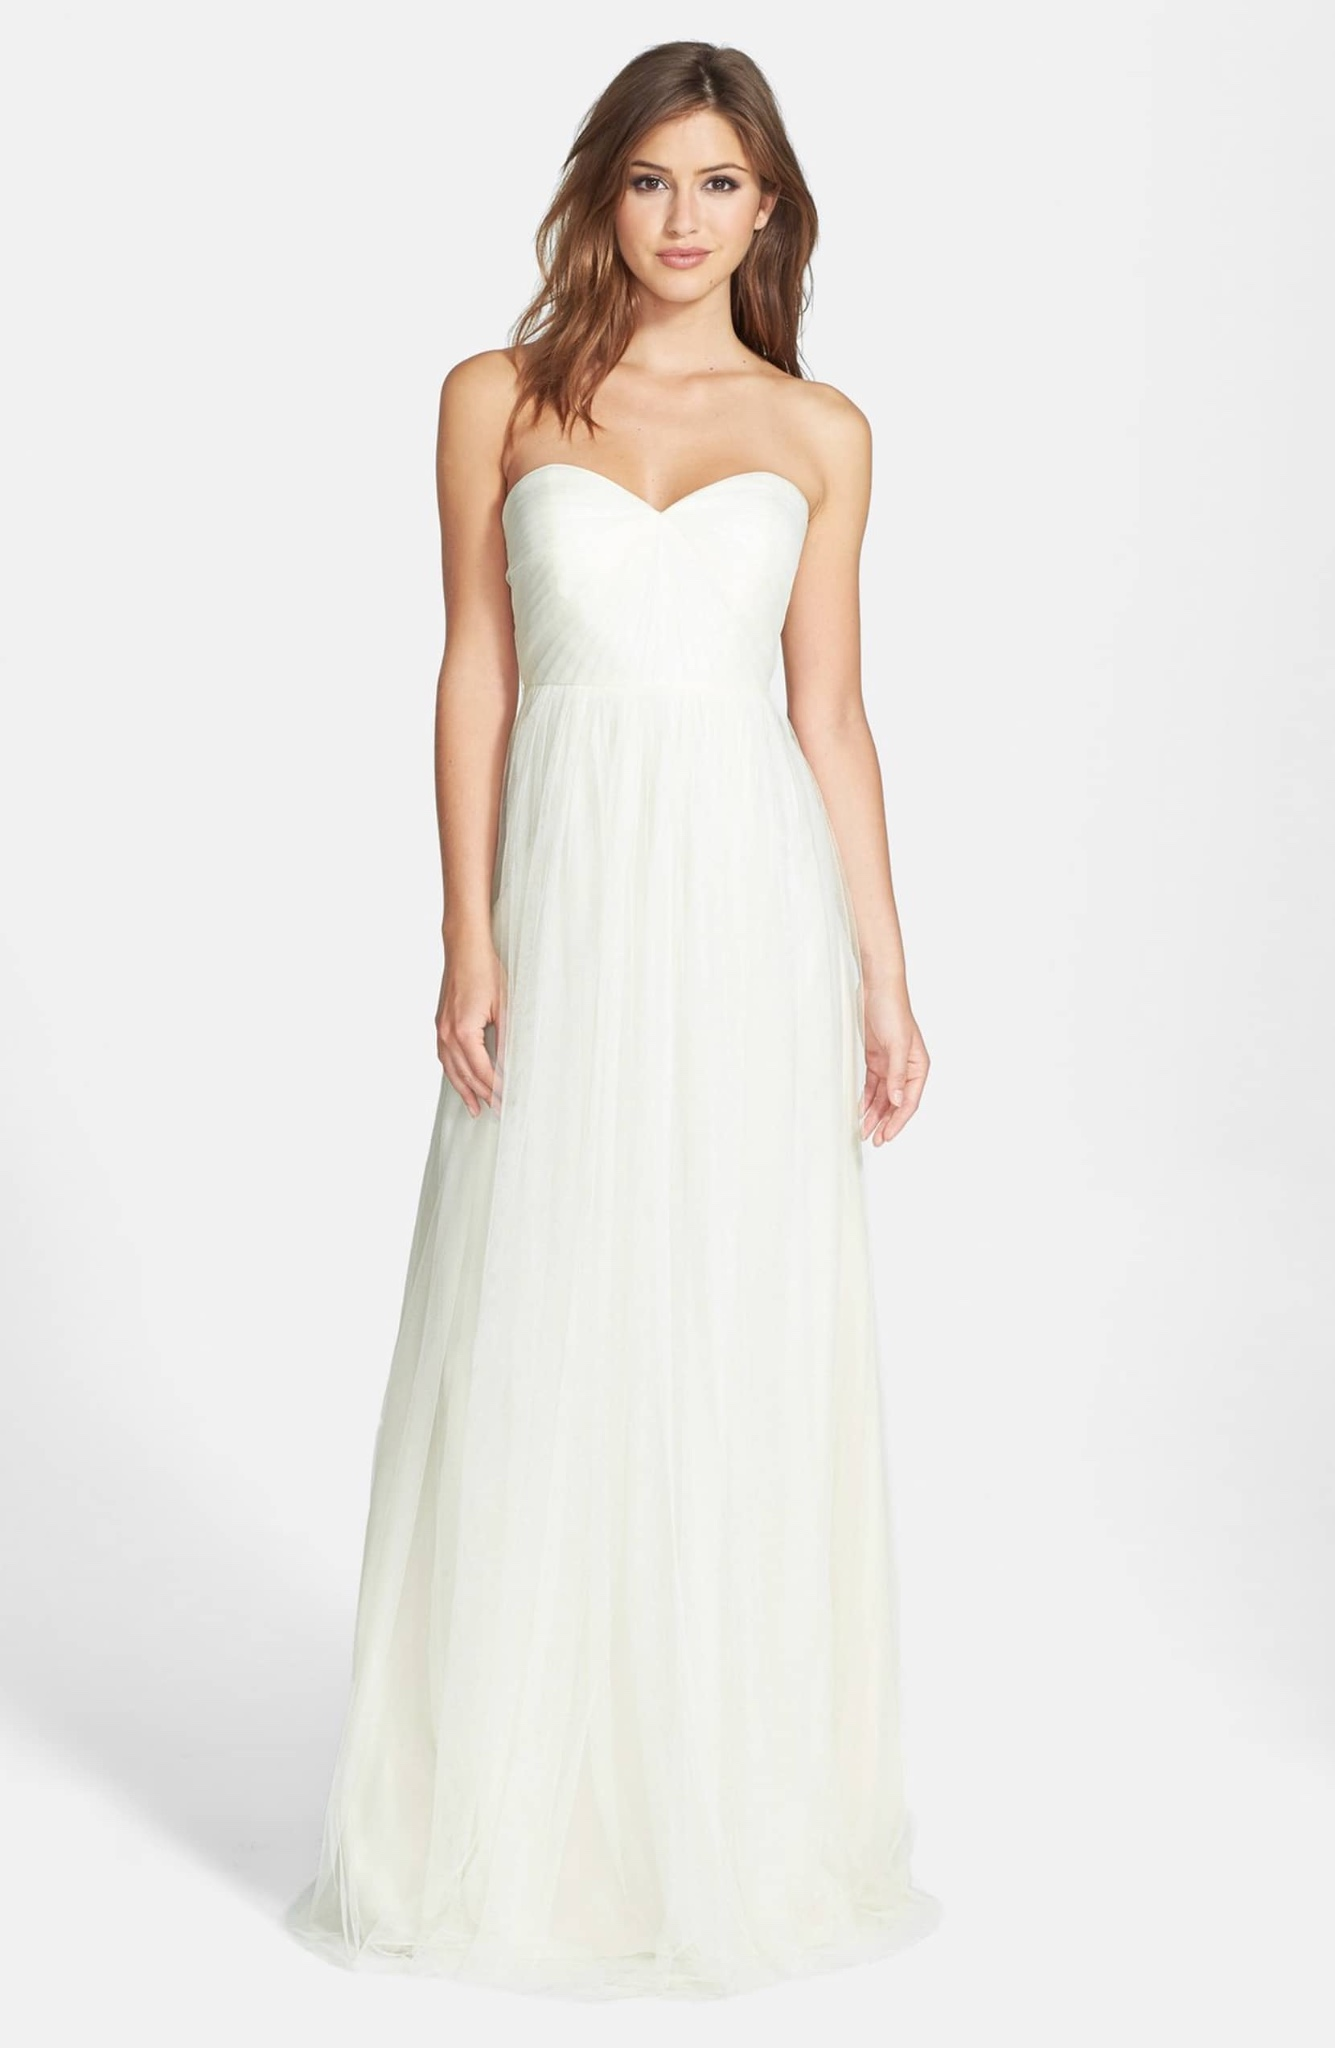 86638e5c8f9 Details about Jenny Yoo Annabelle Convertible Tulle Column Gown Dress SZ 6  ( 260) Cream